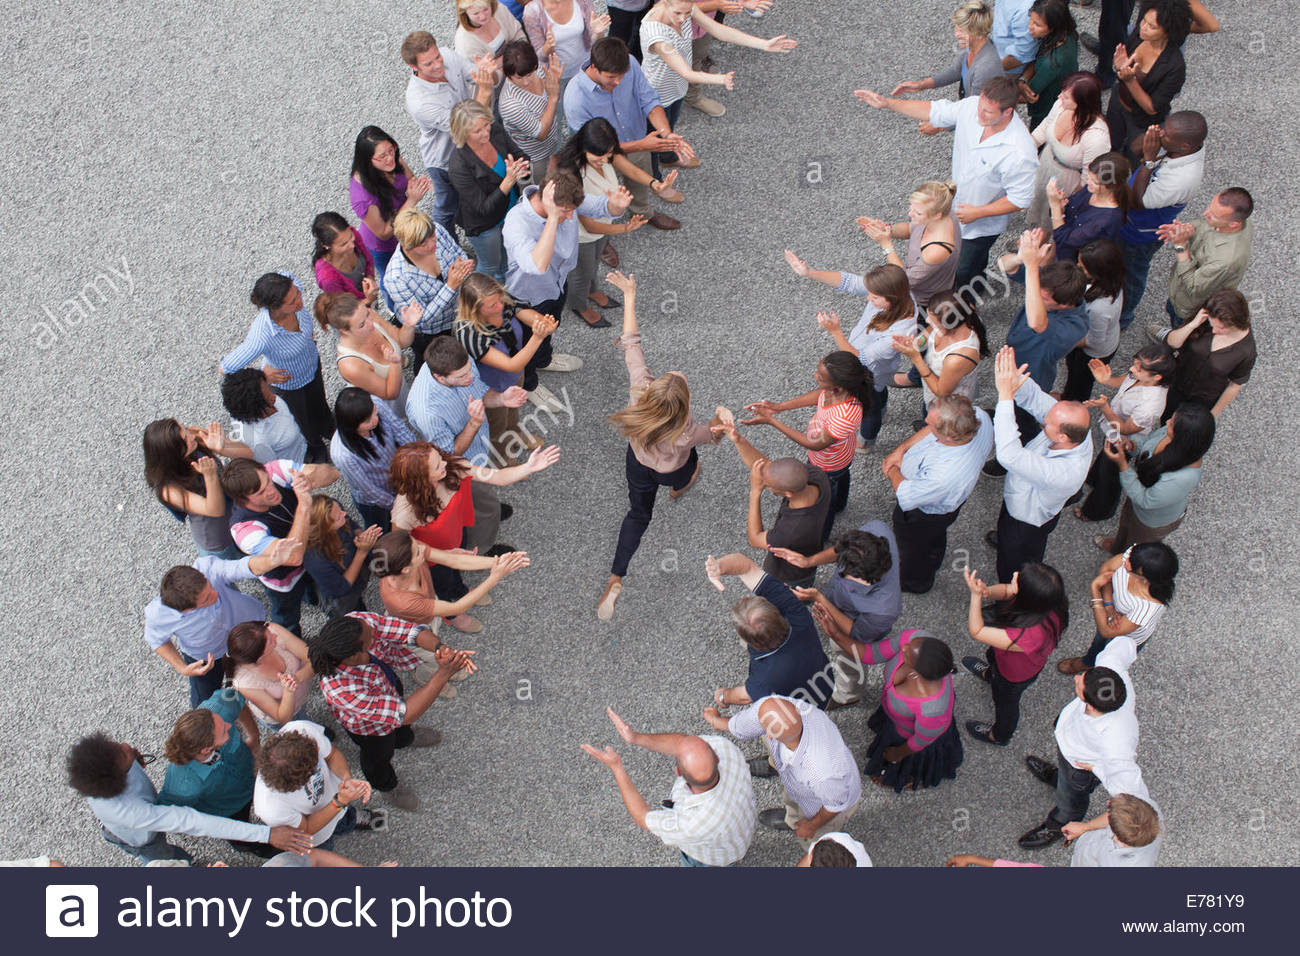 Woman walking between two groups of people, people clapping - Stock Image